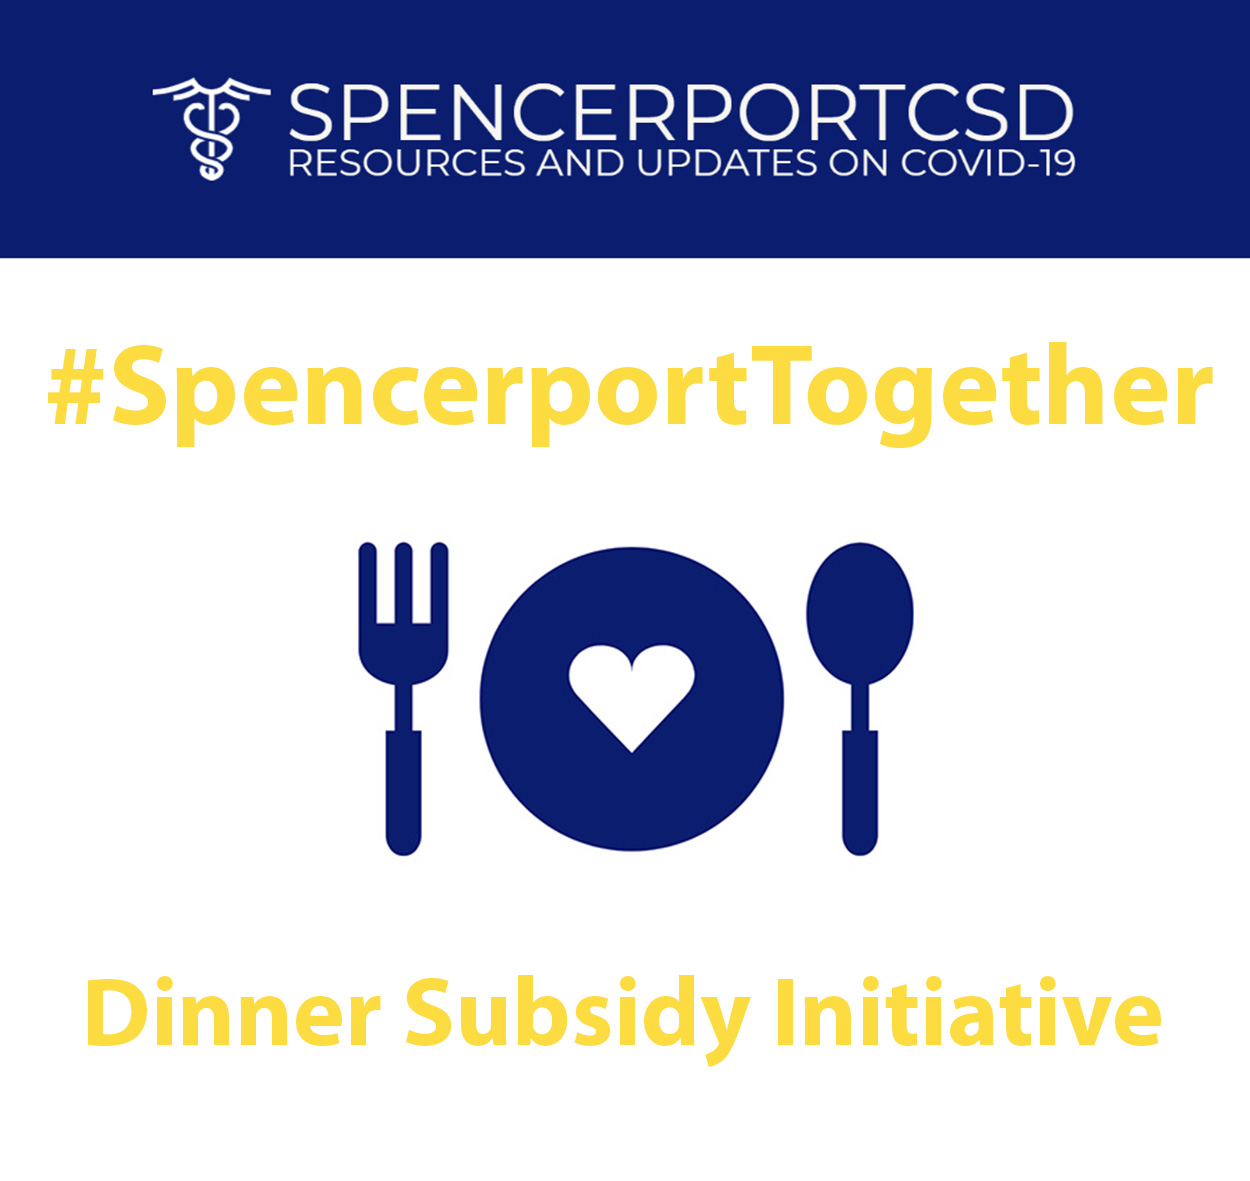 SpencerportTogether